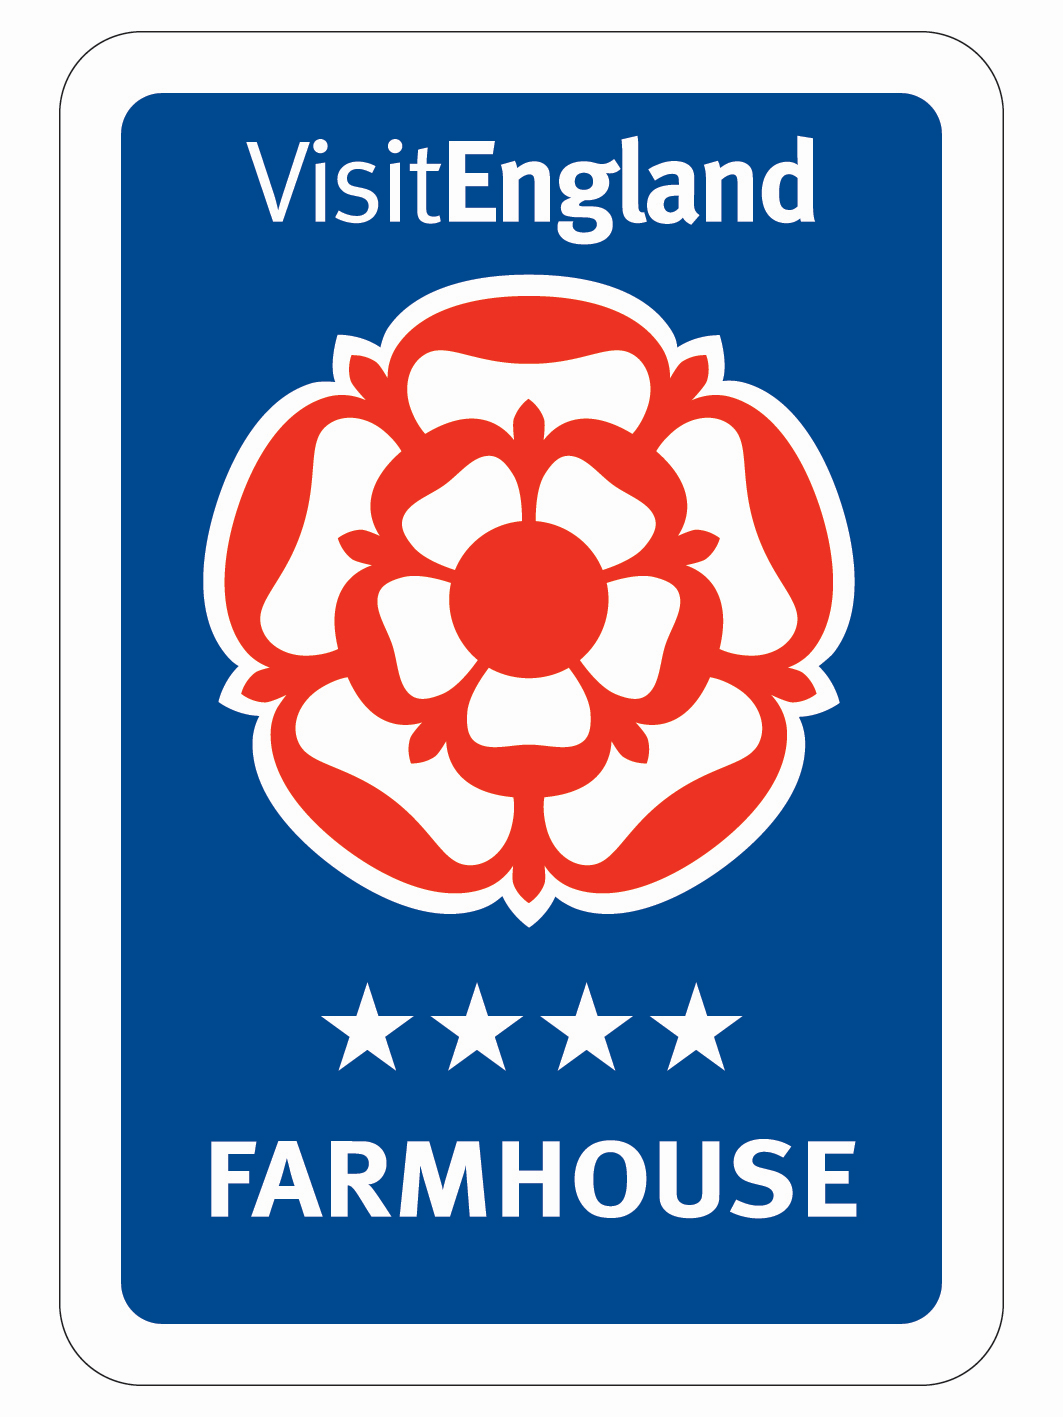 visitengland-4-star-farmhouse-2016-51331.png